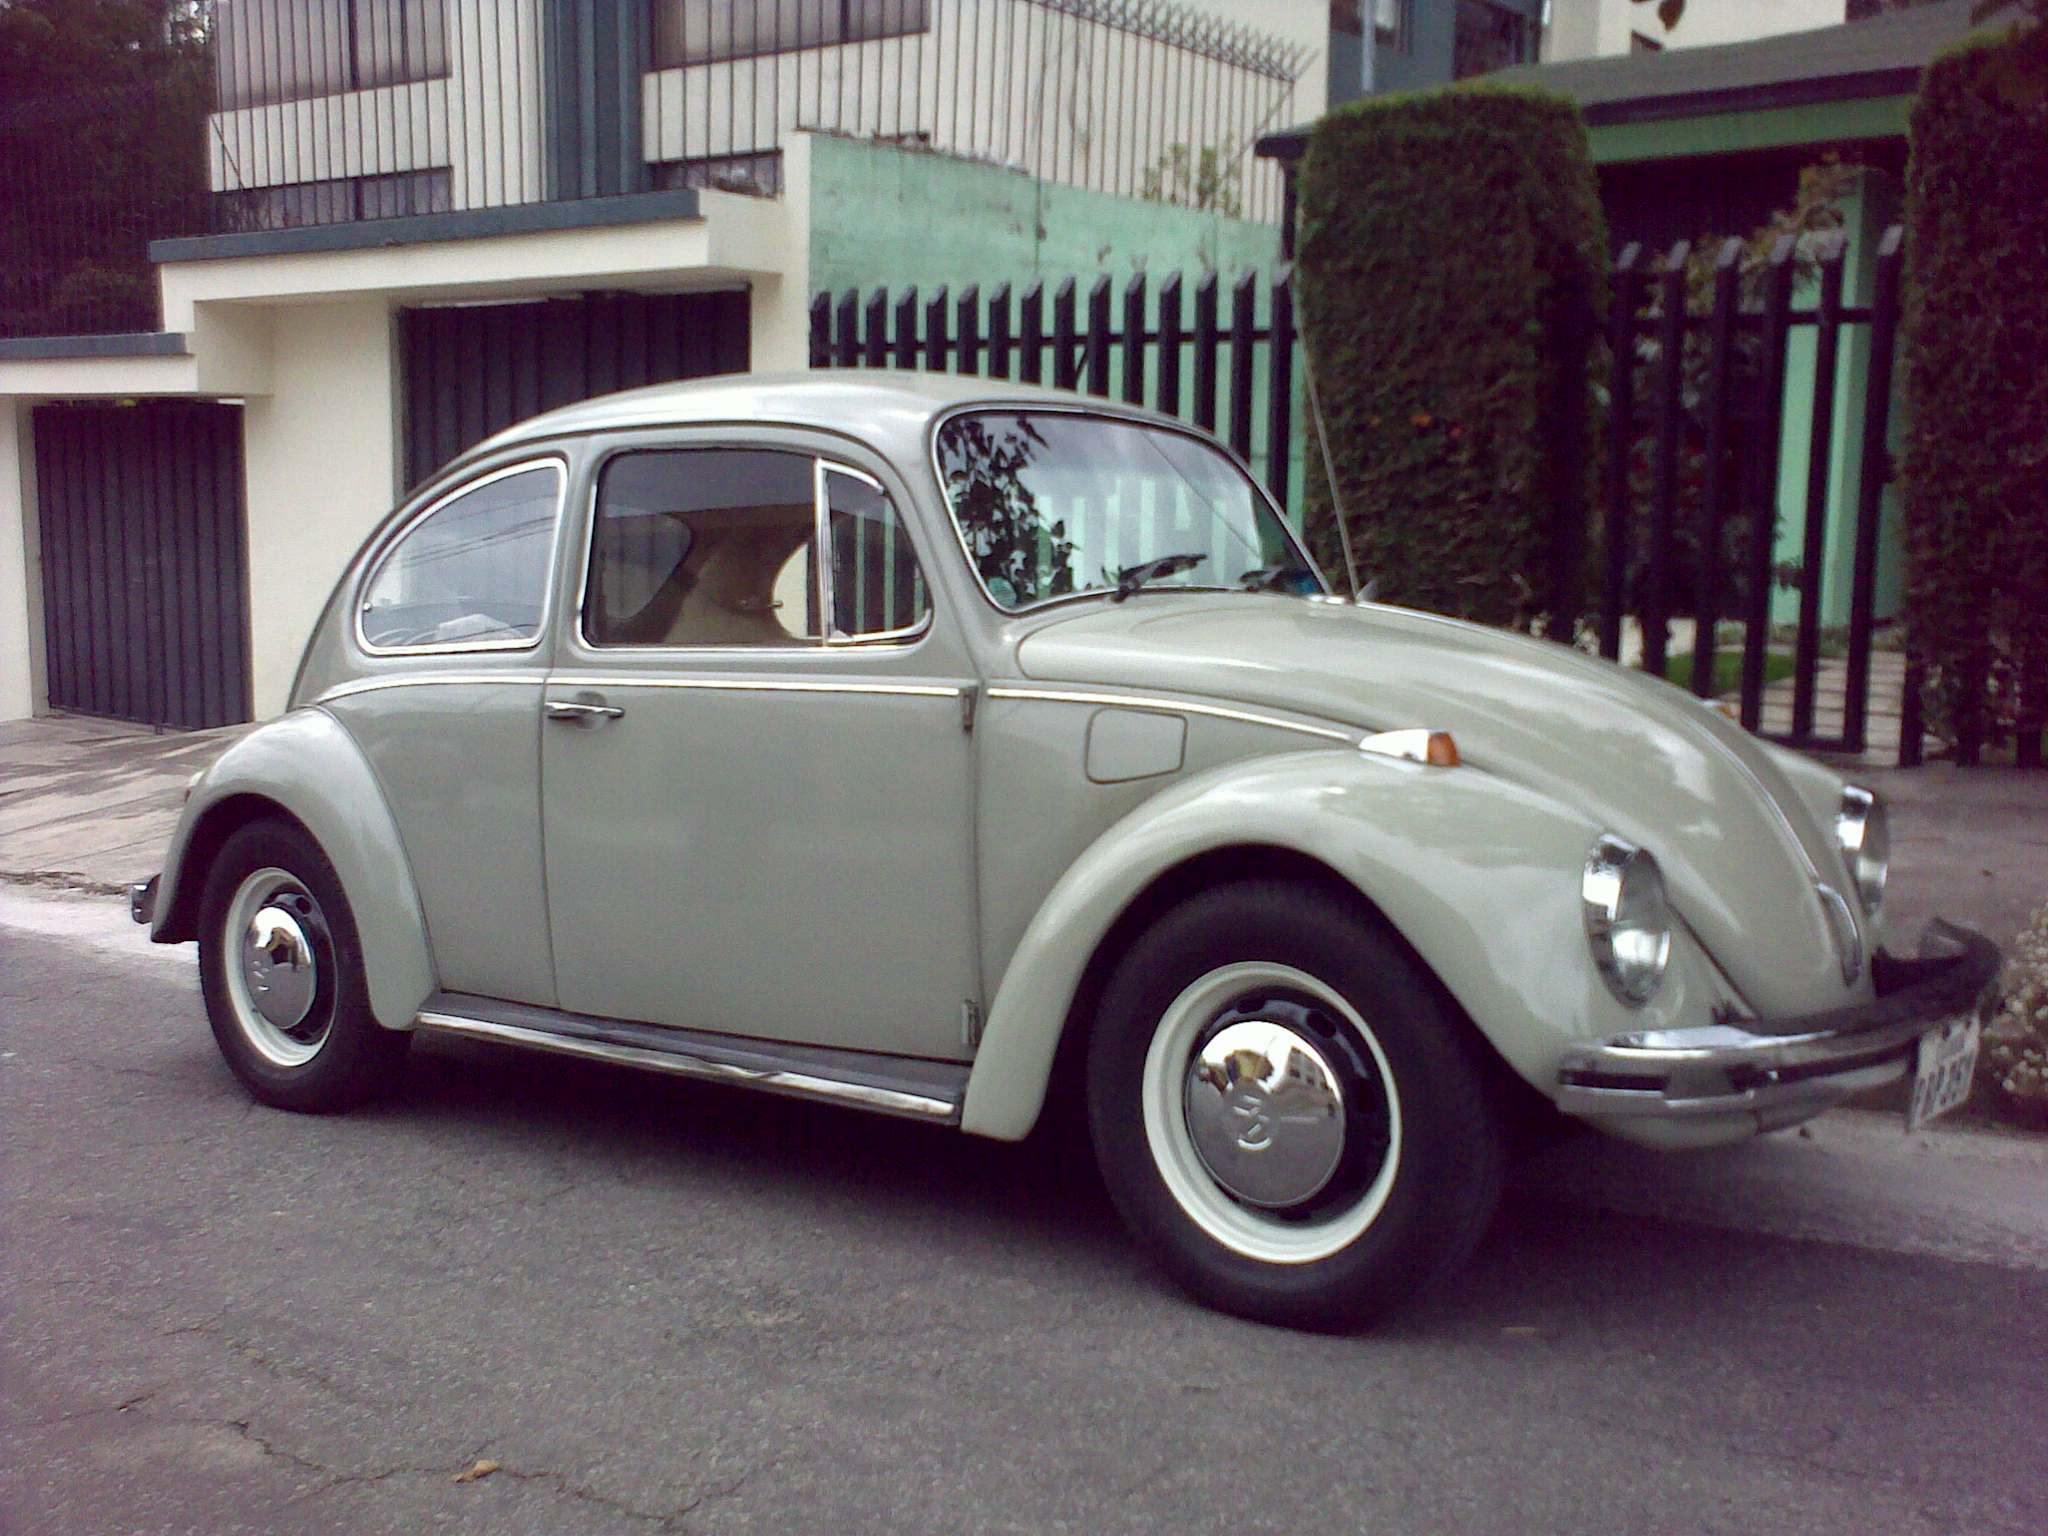 doncoque 1969 Volkswagen Beetle Specs, Photos, Modification Info at CarDomain